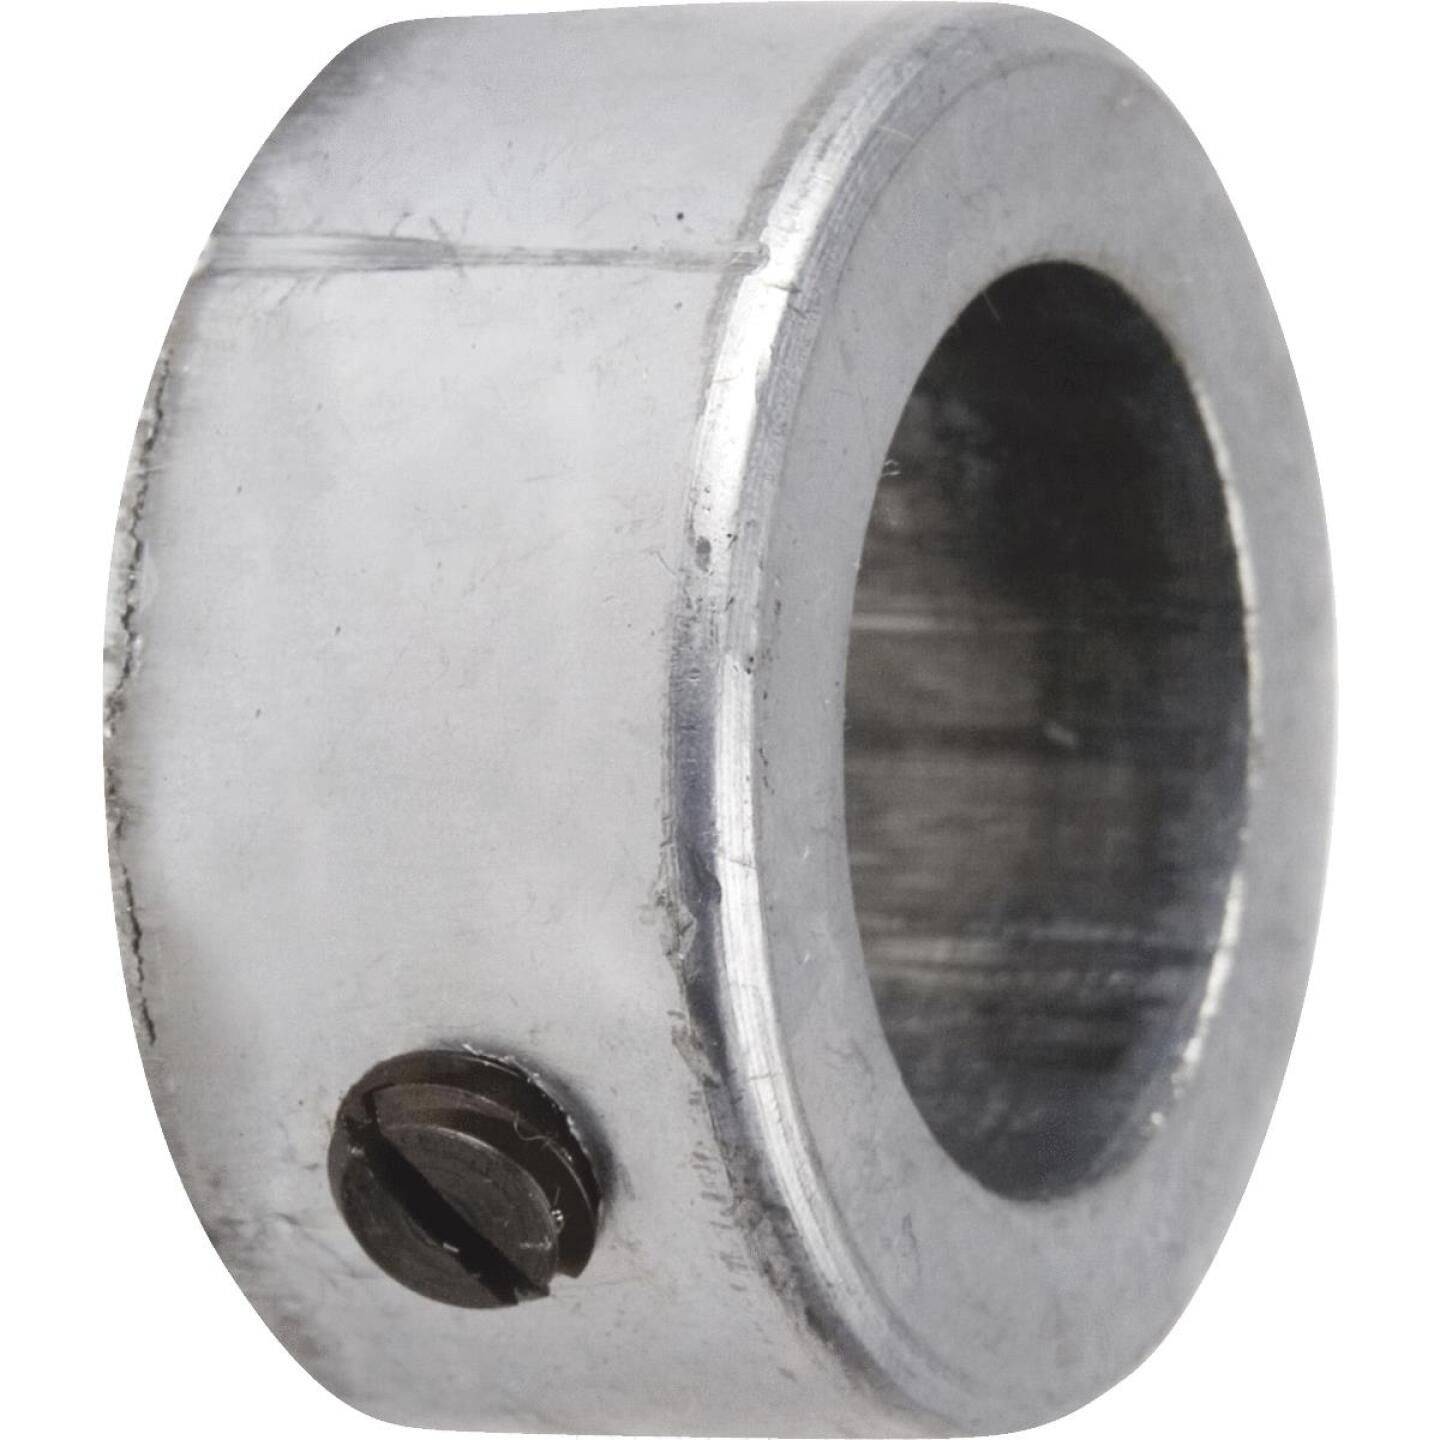 Chicago Die Casting 5/8 In. Shaft Collar Image 1